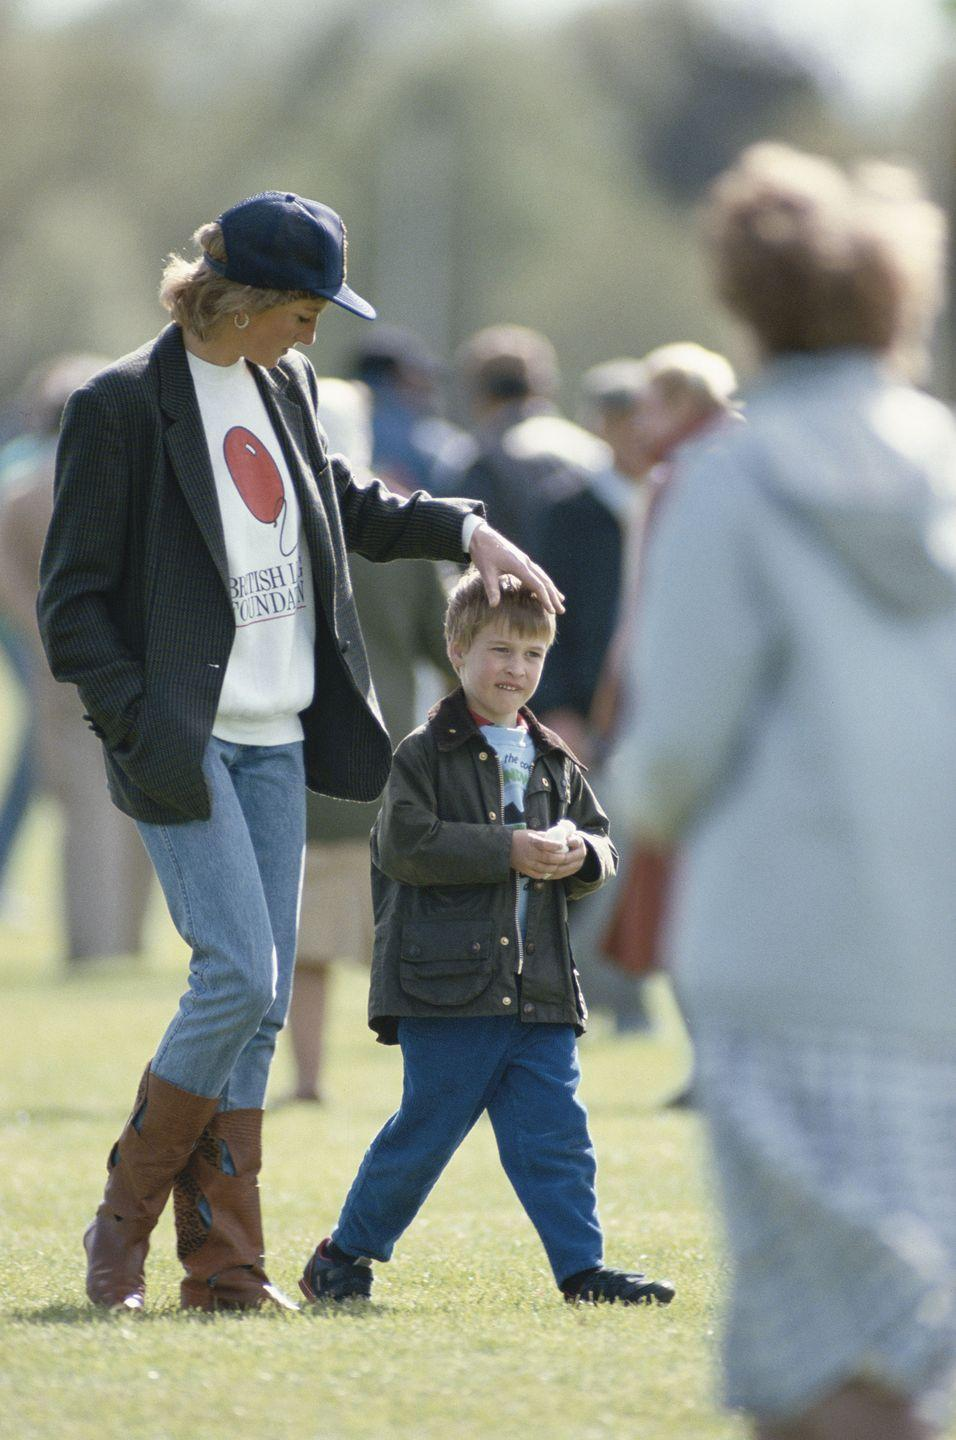 <p>Later that same month, the Princess of Wales dresses casually to attend a polo match at the Guards Polo Club in Windsor with Prince William. Diana's sweatshirt features the British Lung Foundation logo on the front.</p>